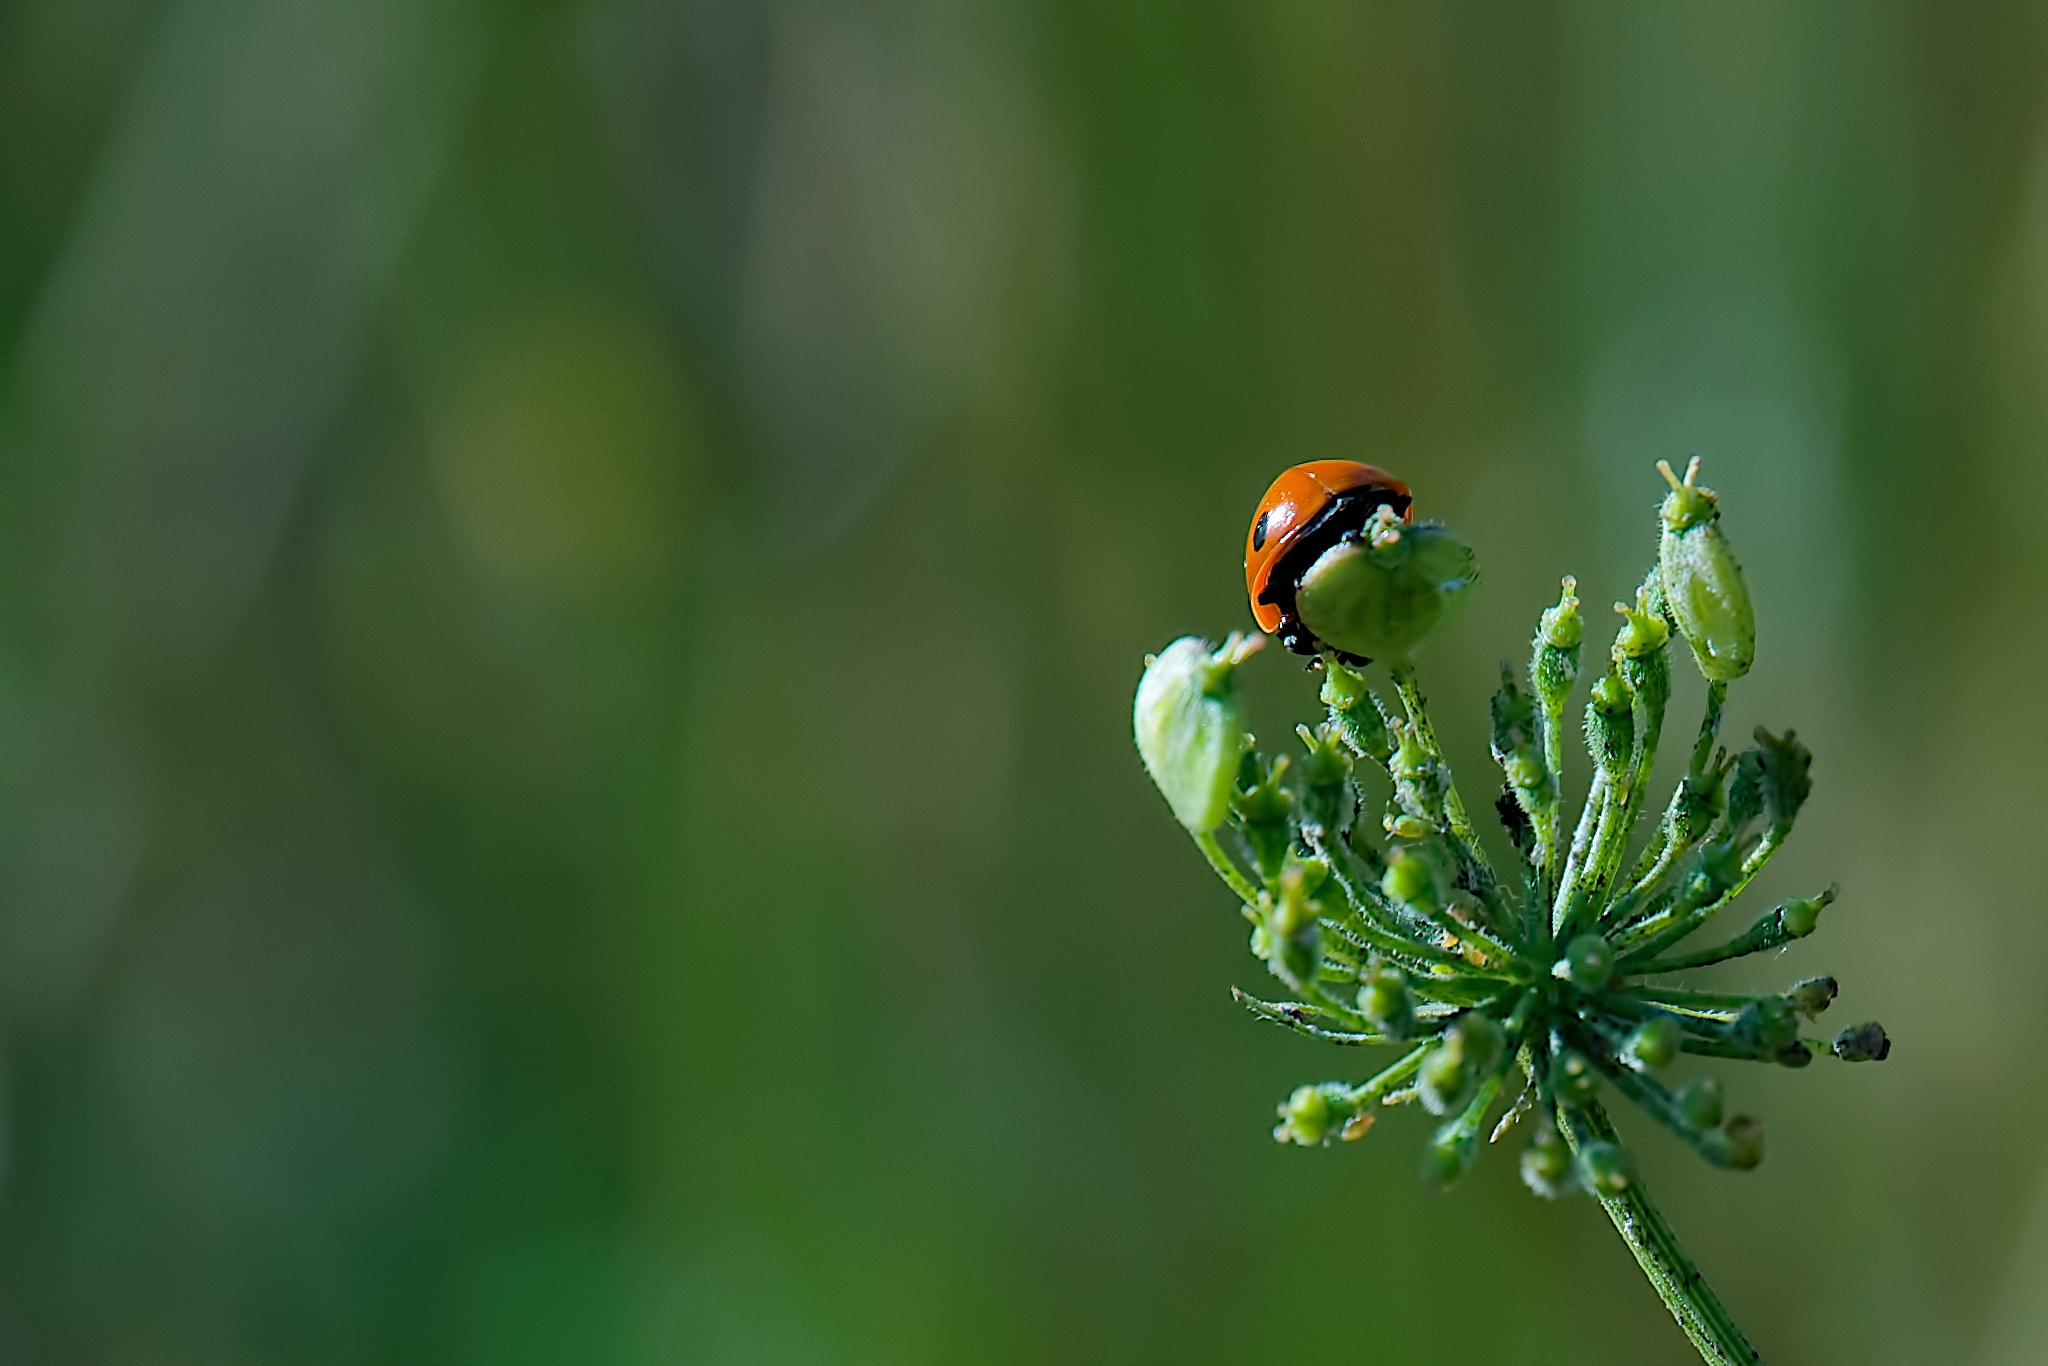 Photograph Almost There by Sunil Chawla on 500px